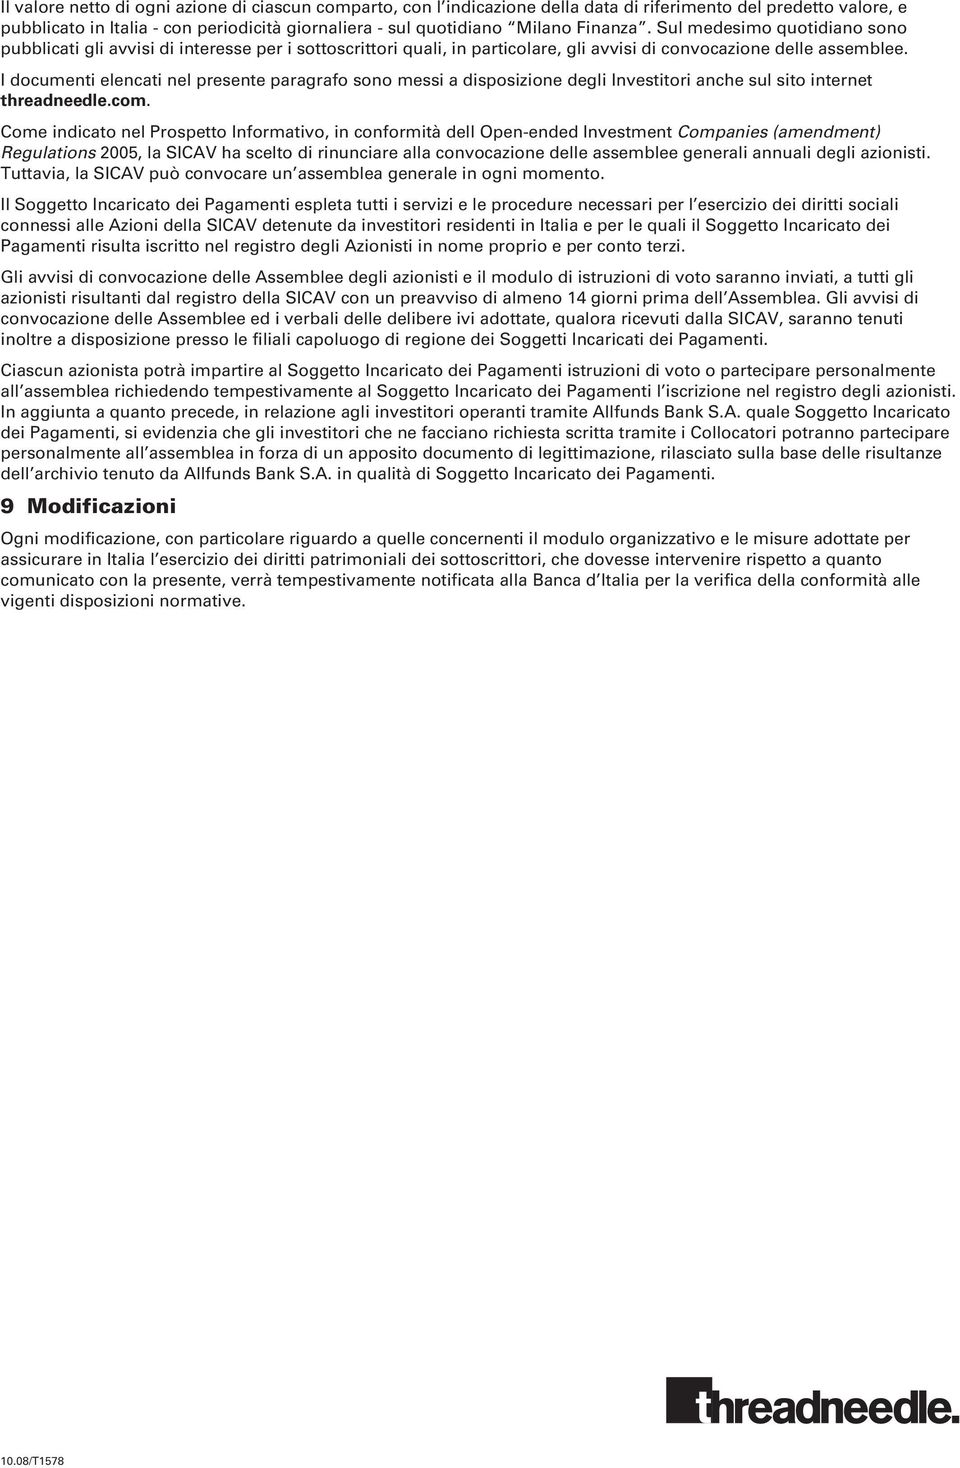 open-ended investment companies regulations 2001 pdf